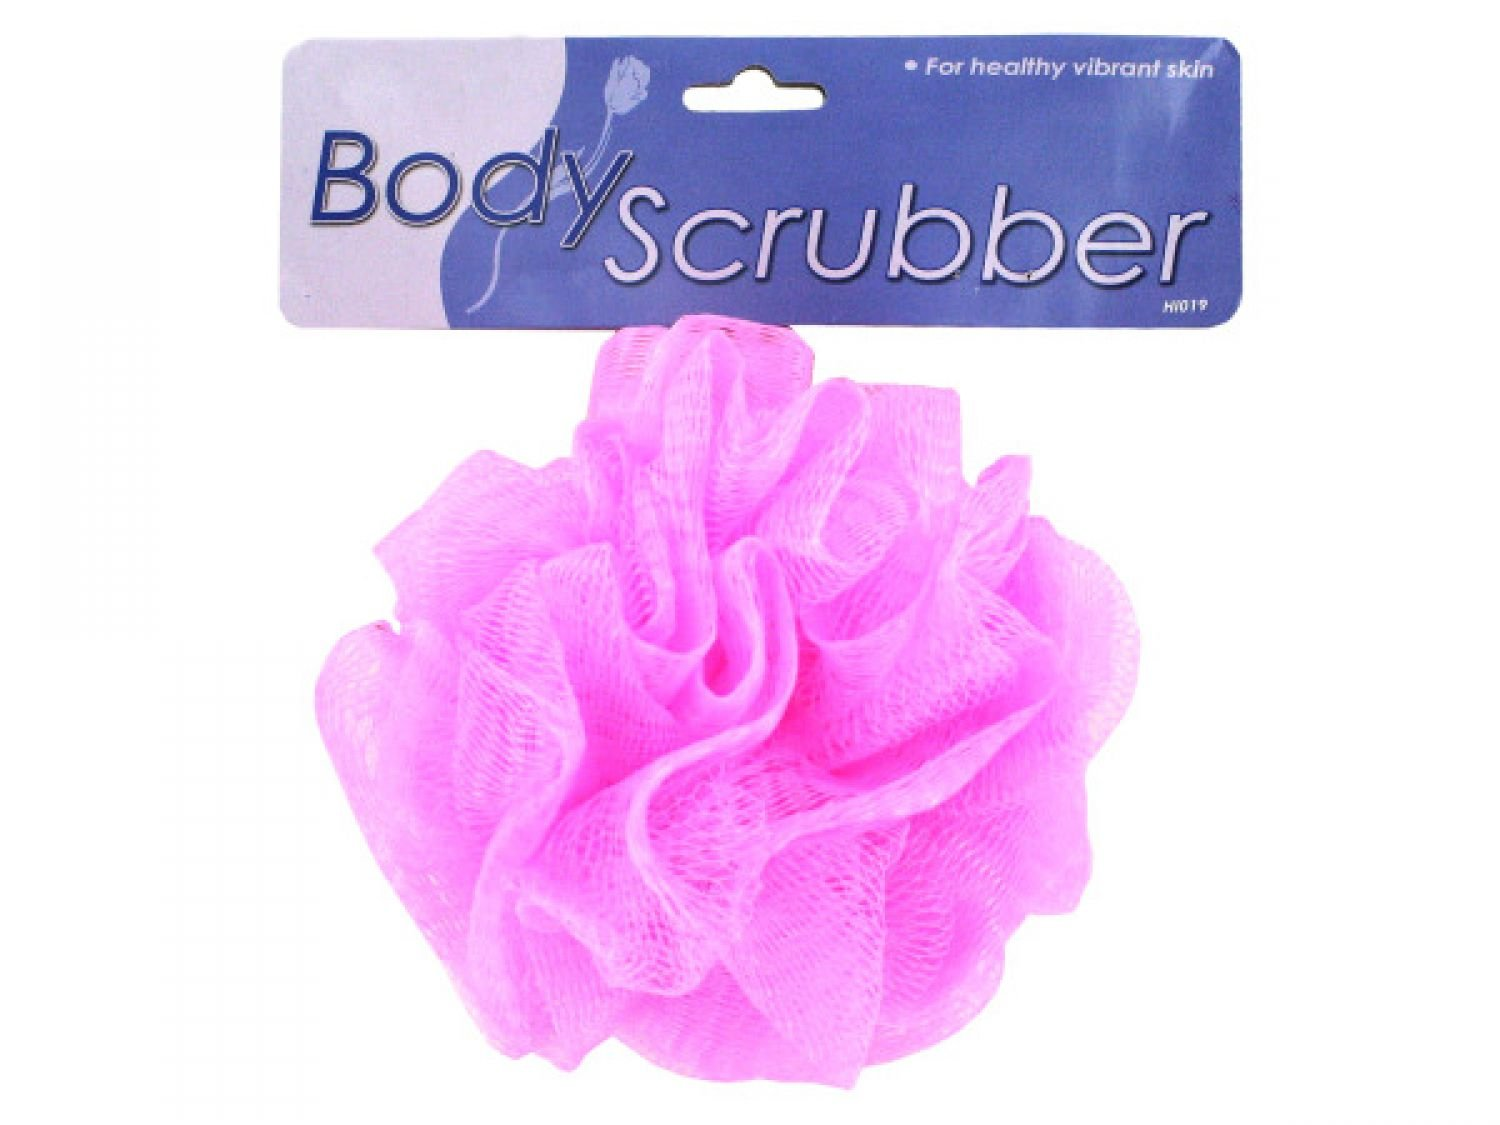 bulk buys Exfoliating Body Scrubber - Set of 144, [Personal Care, Loofahs & Shower Scrubs]